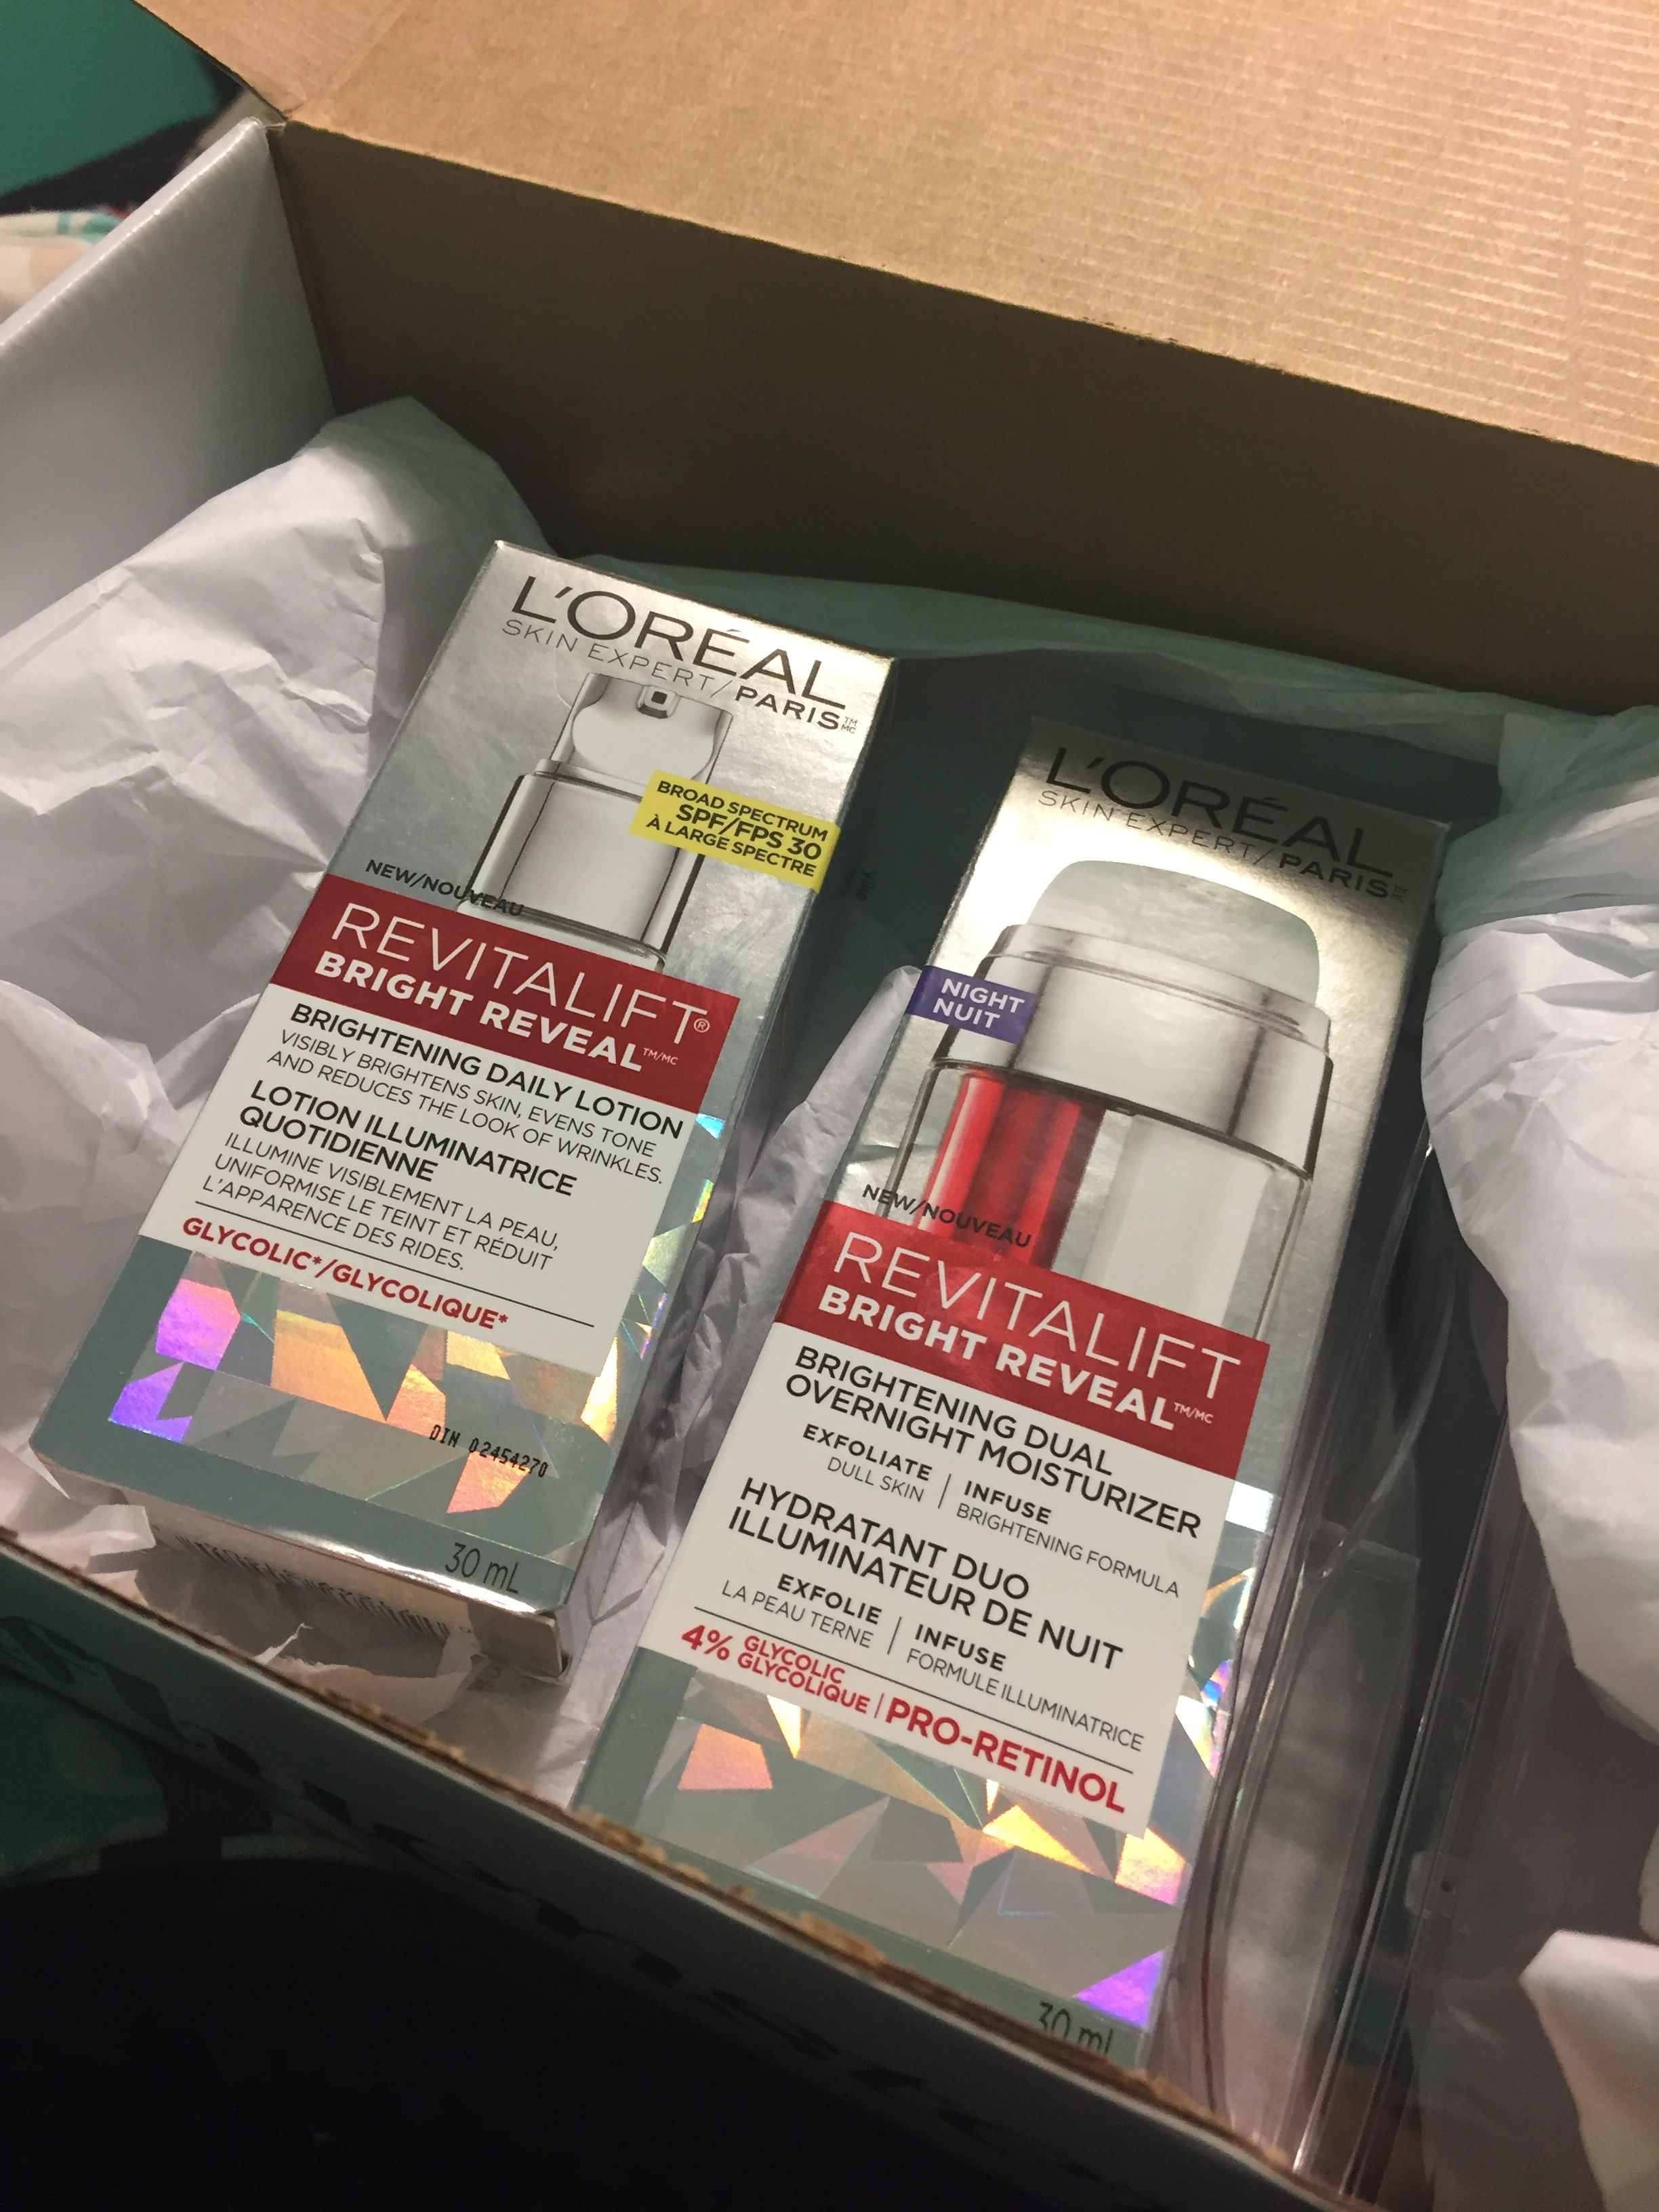 Newest product i received for testing purpose from influenster . Disclaimer.